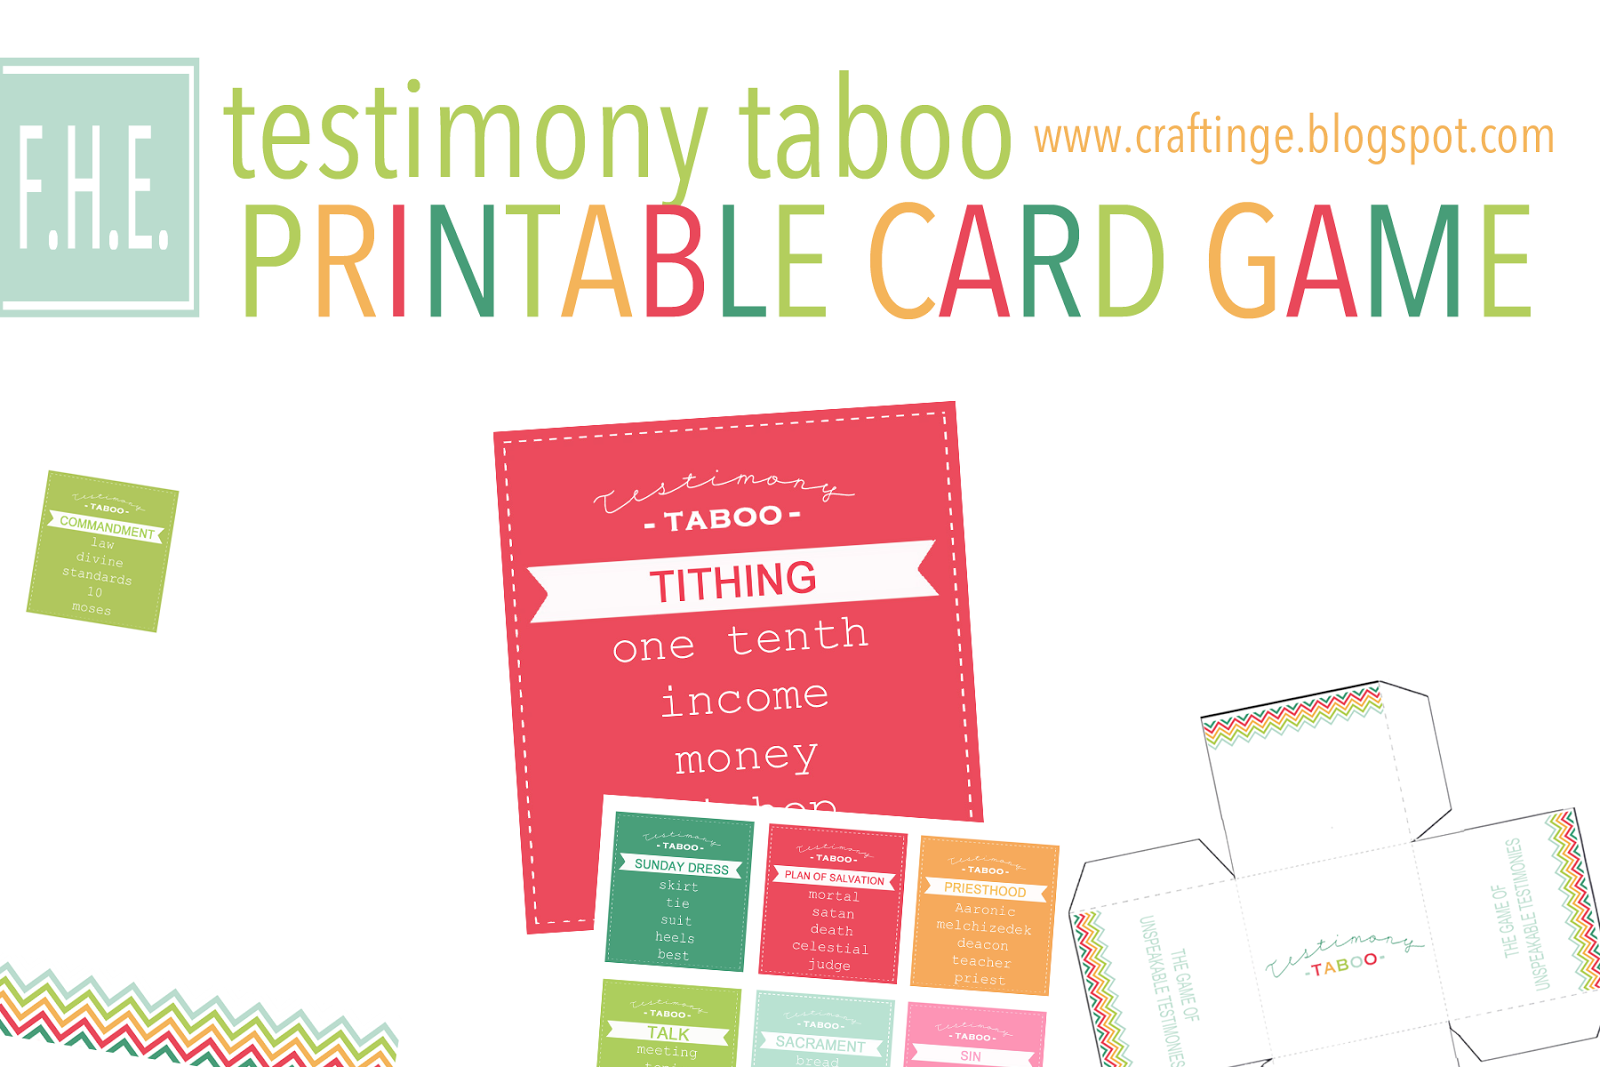 photo about Taboo Cards Printable referred to as Testimony Taboo (free of charge printables!!) - CraftingeE